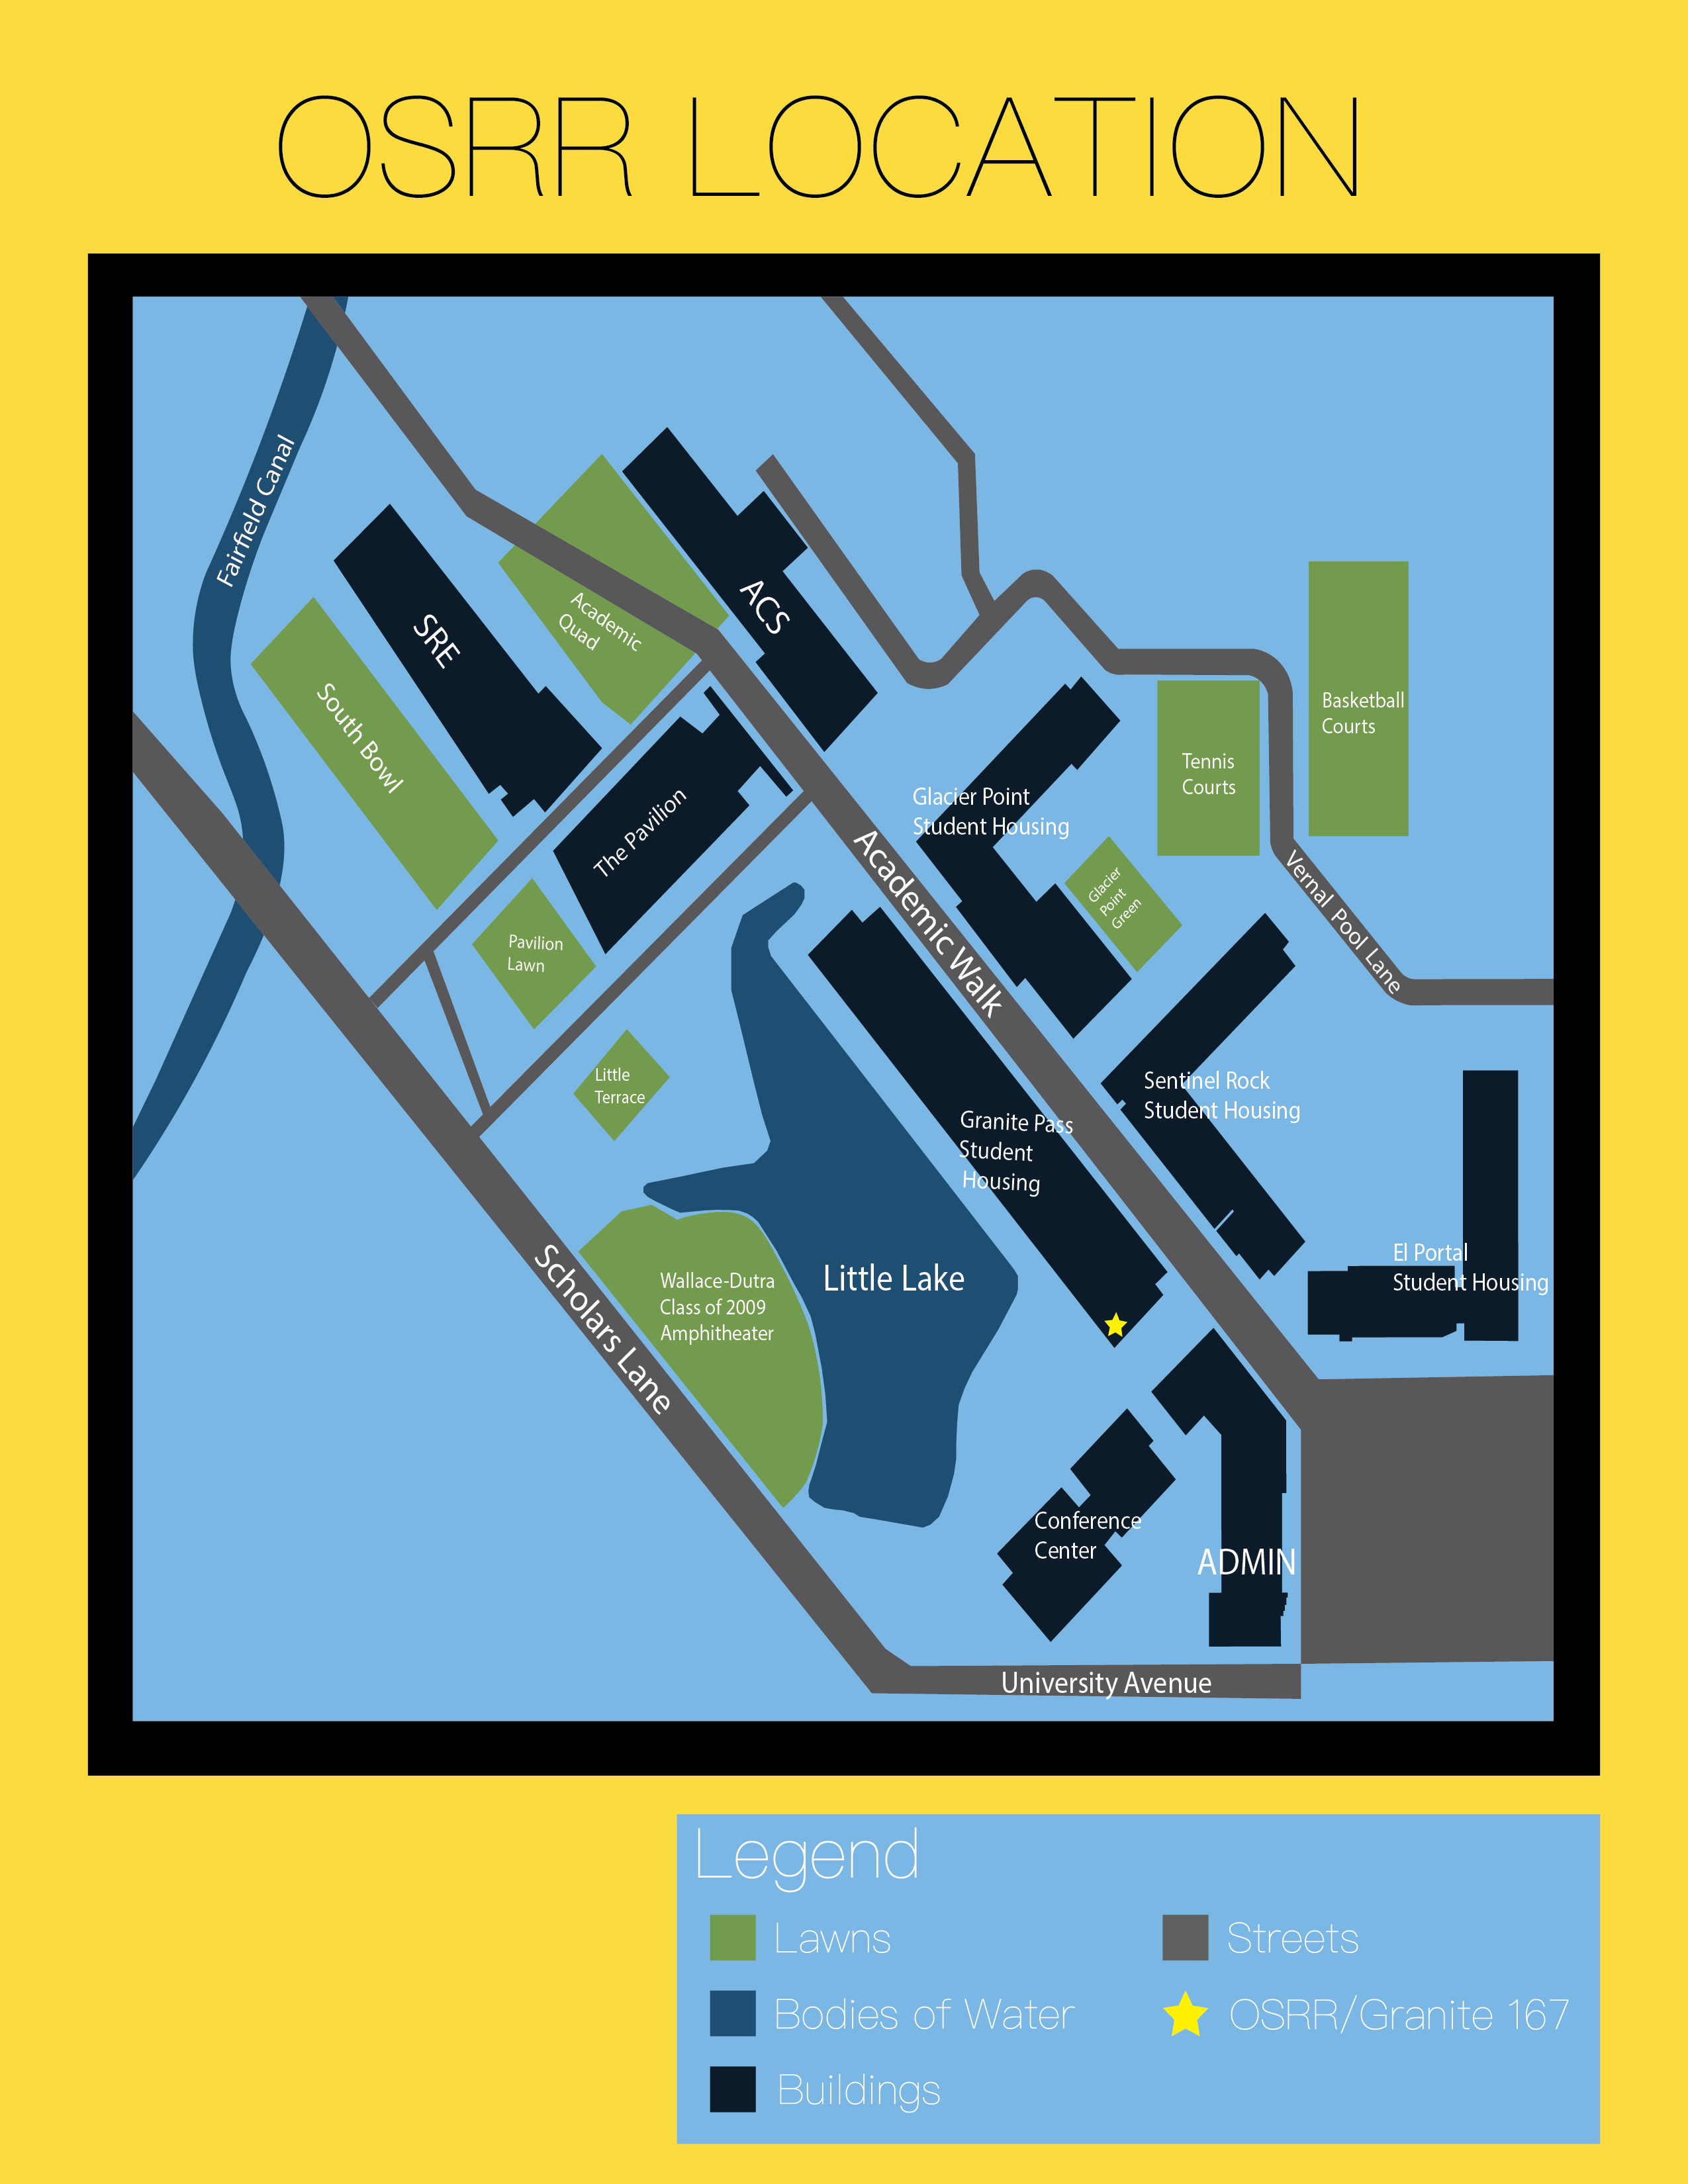 A map of the south side of campus indicating the location of the Office of Student Rights and Responsibilities which is located in Granite Pass room 167.